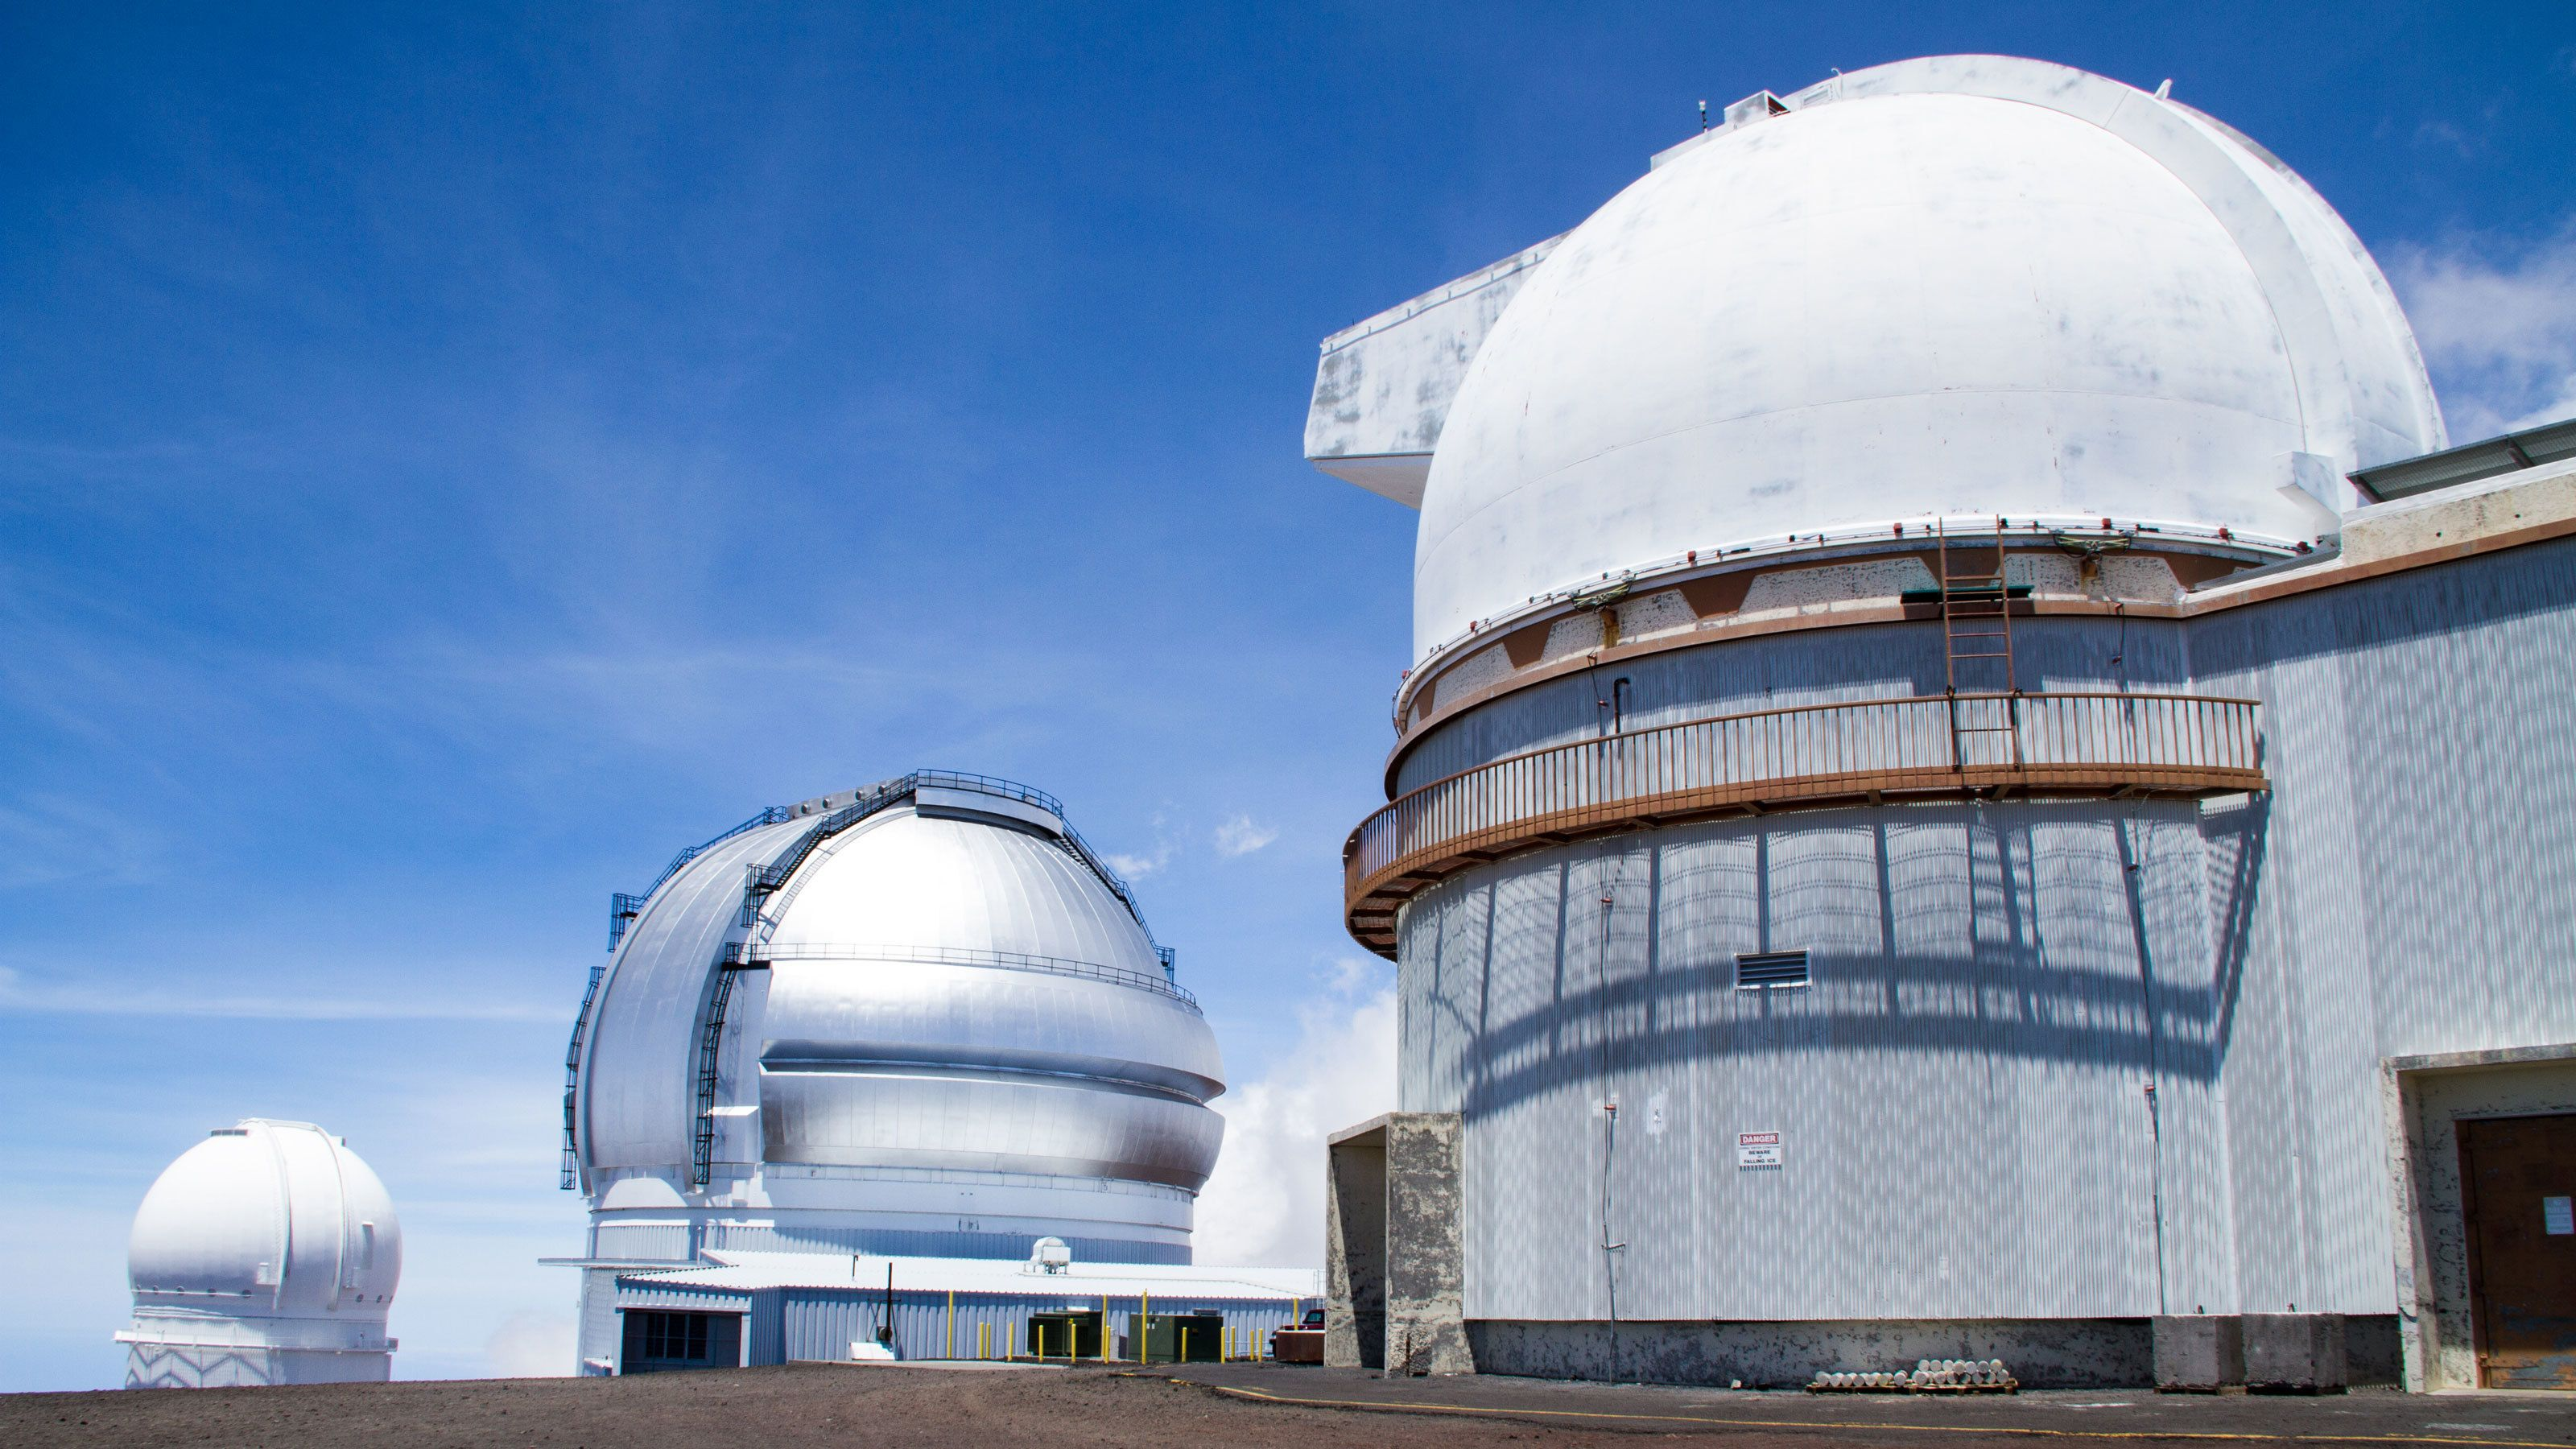 Three of the ?Mauna Kea Space Observatories in Hawaii